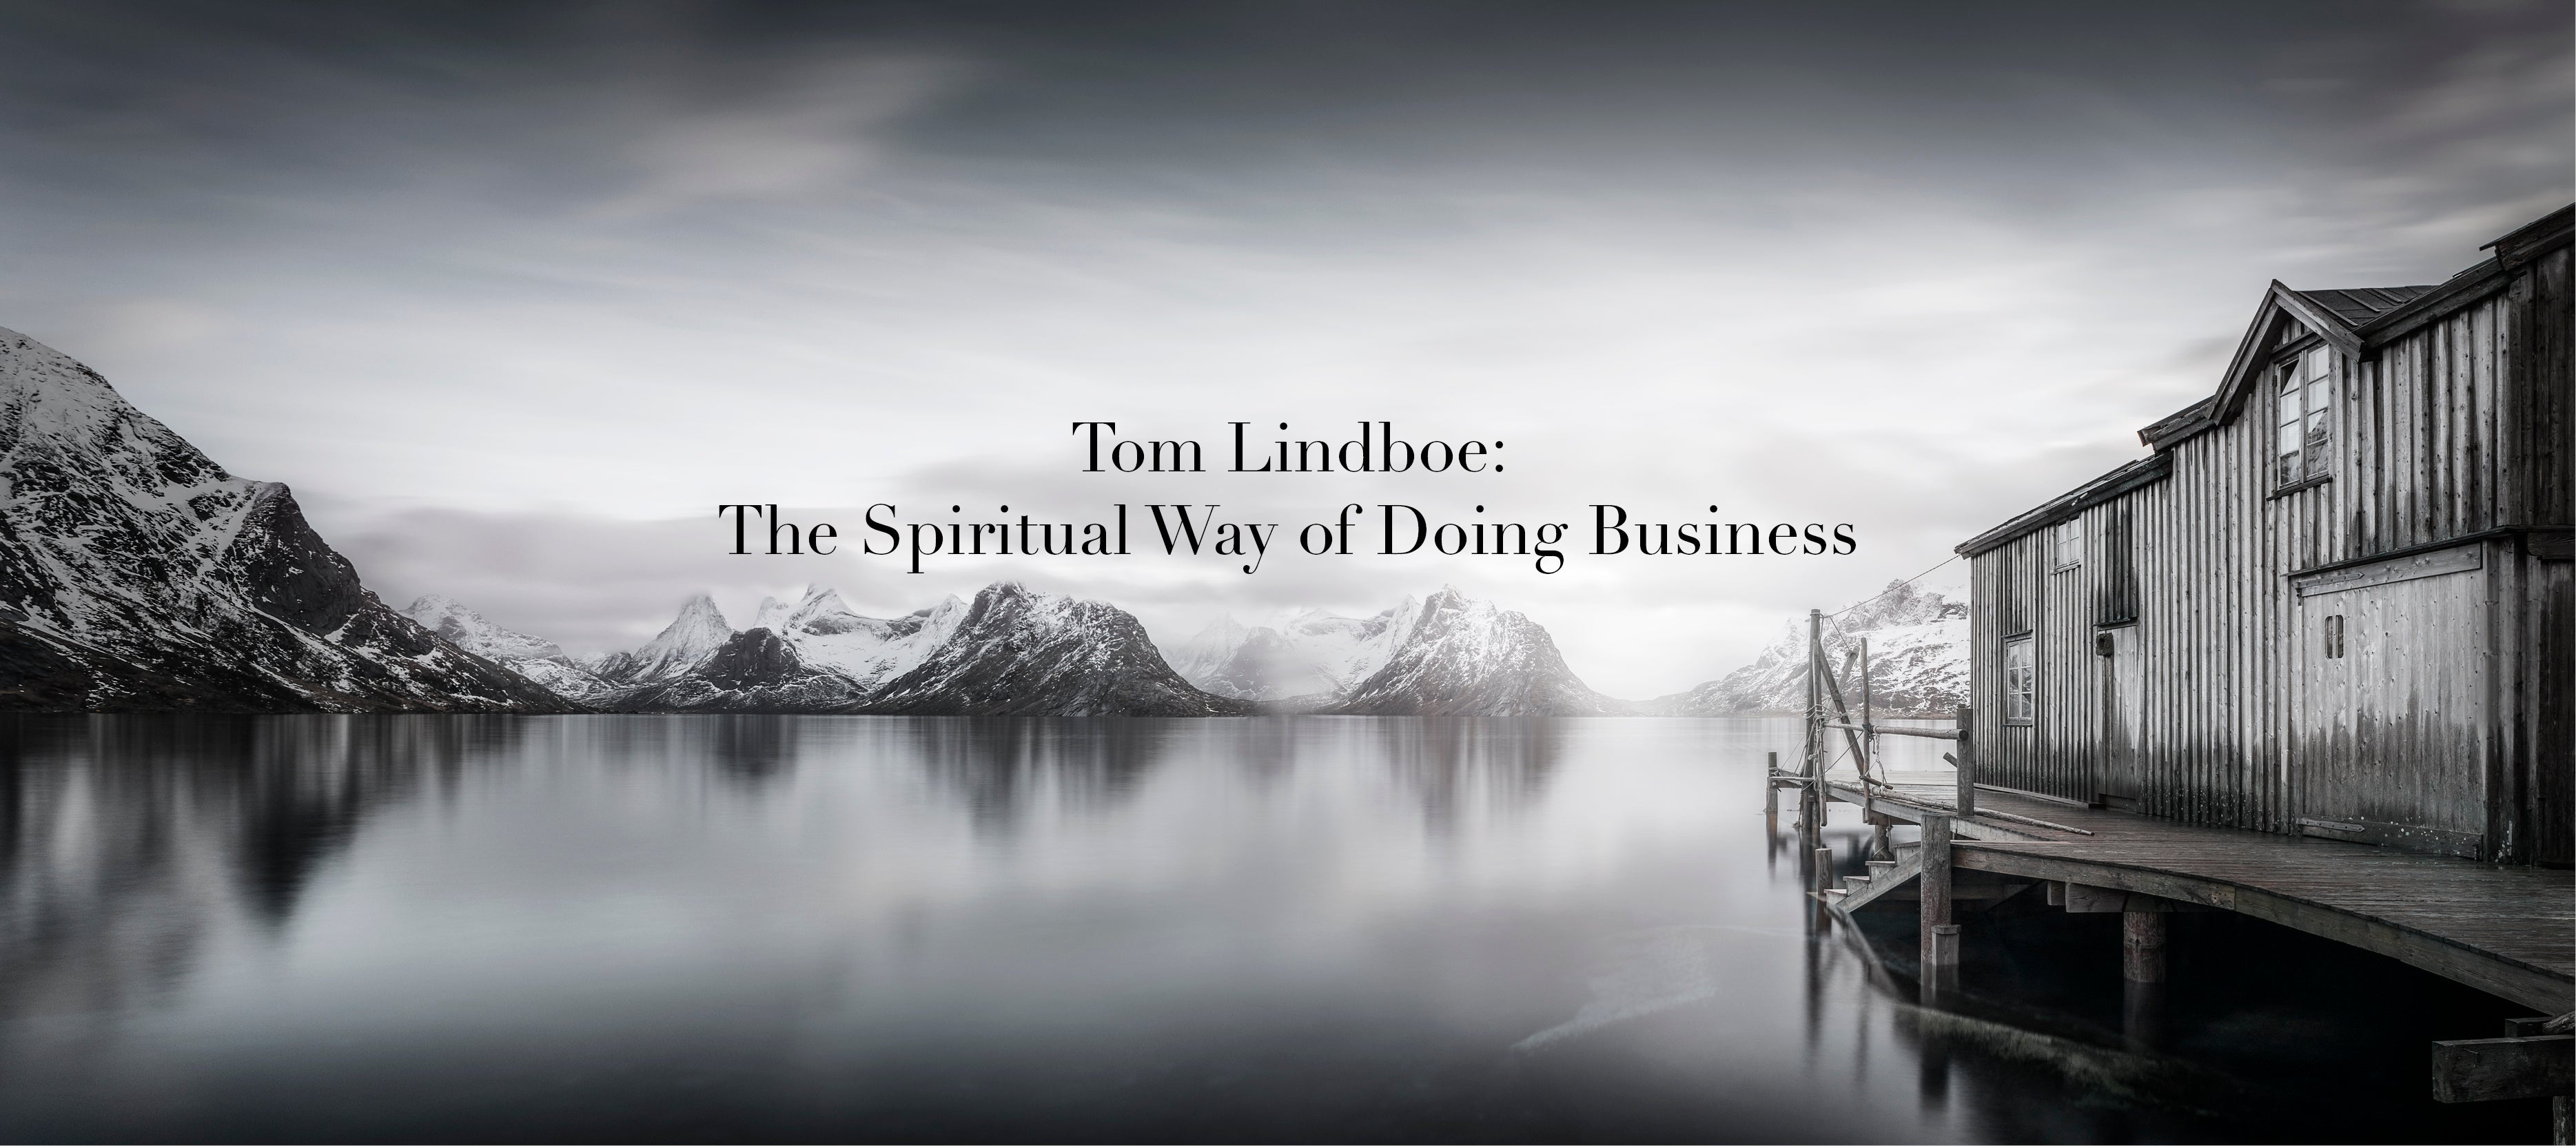 Tom Lindboe: The Spiritual Way of Doing Business